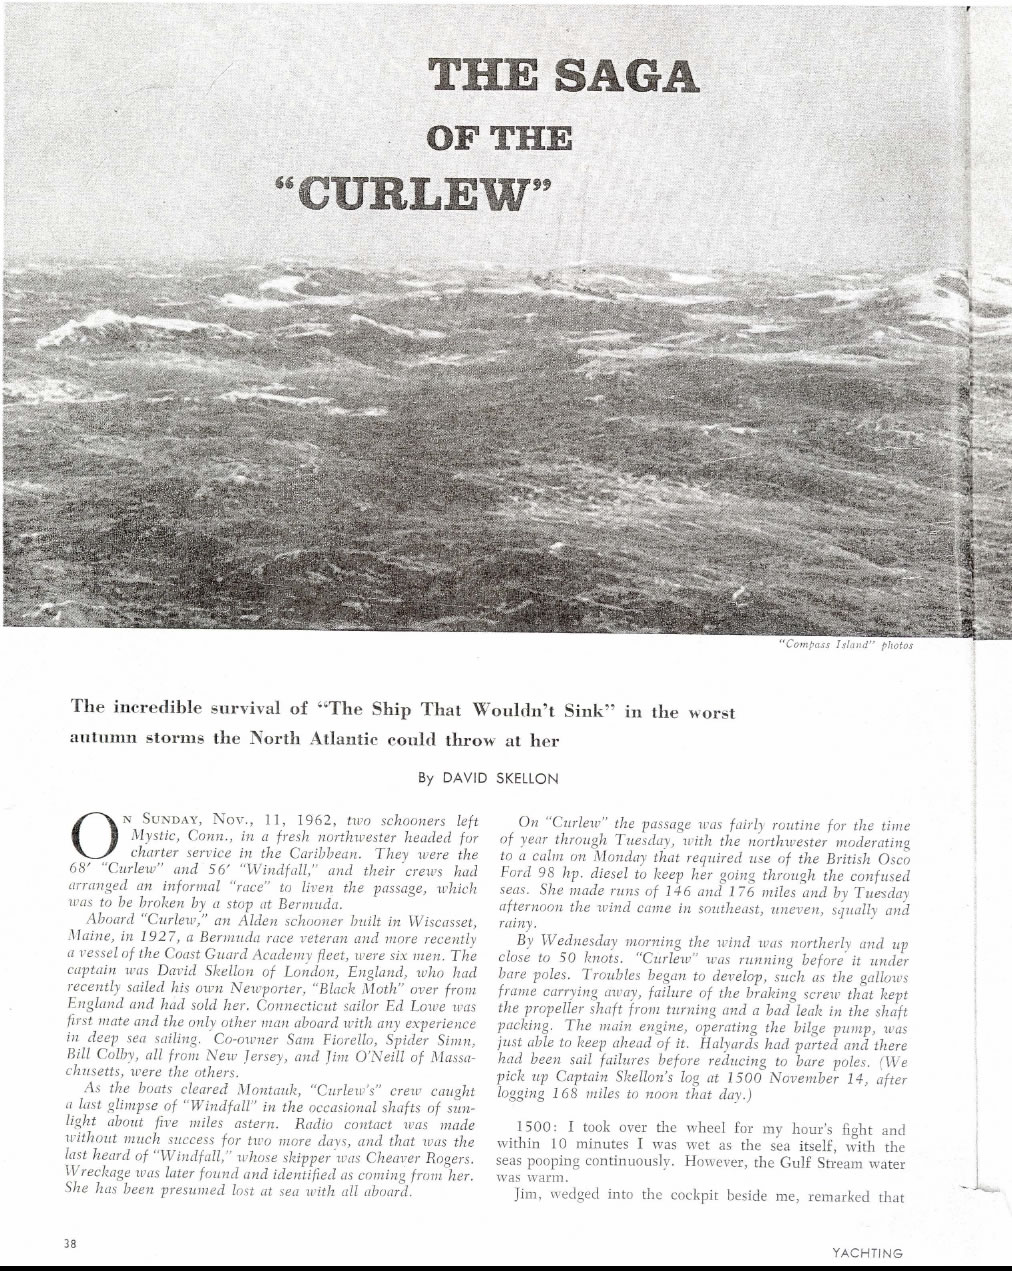 The Saga of the Curlew Page 1